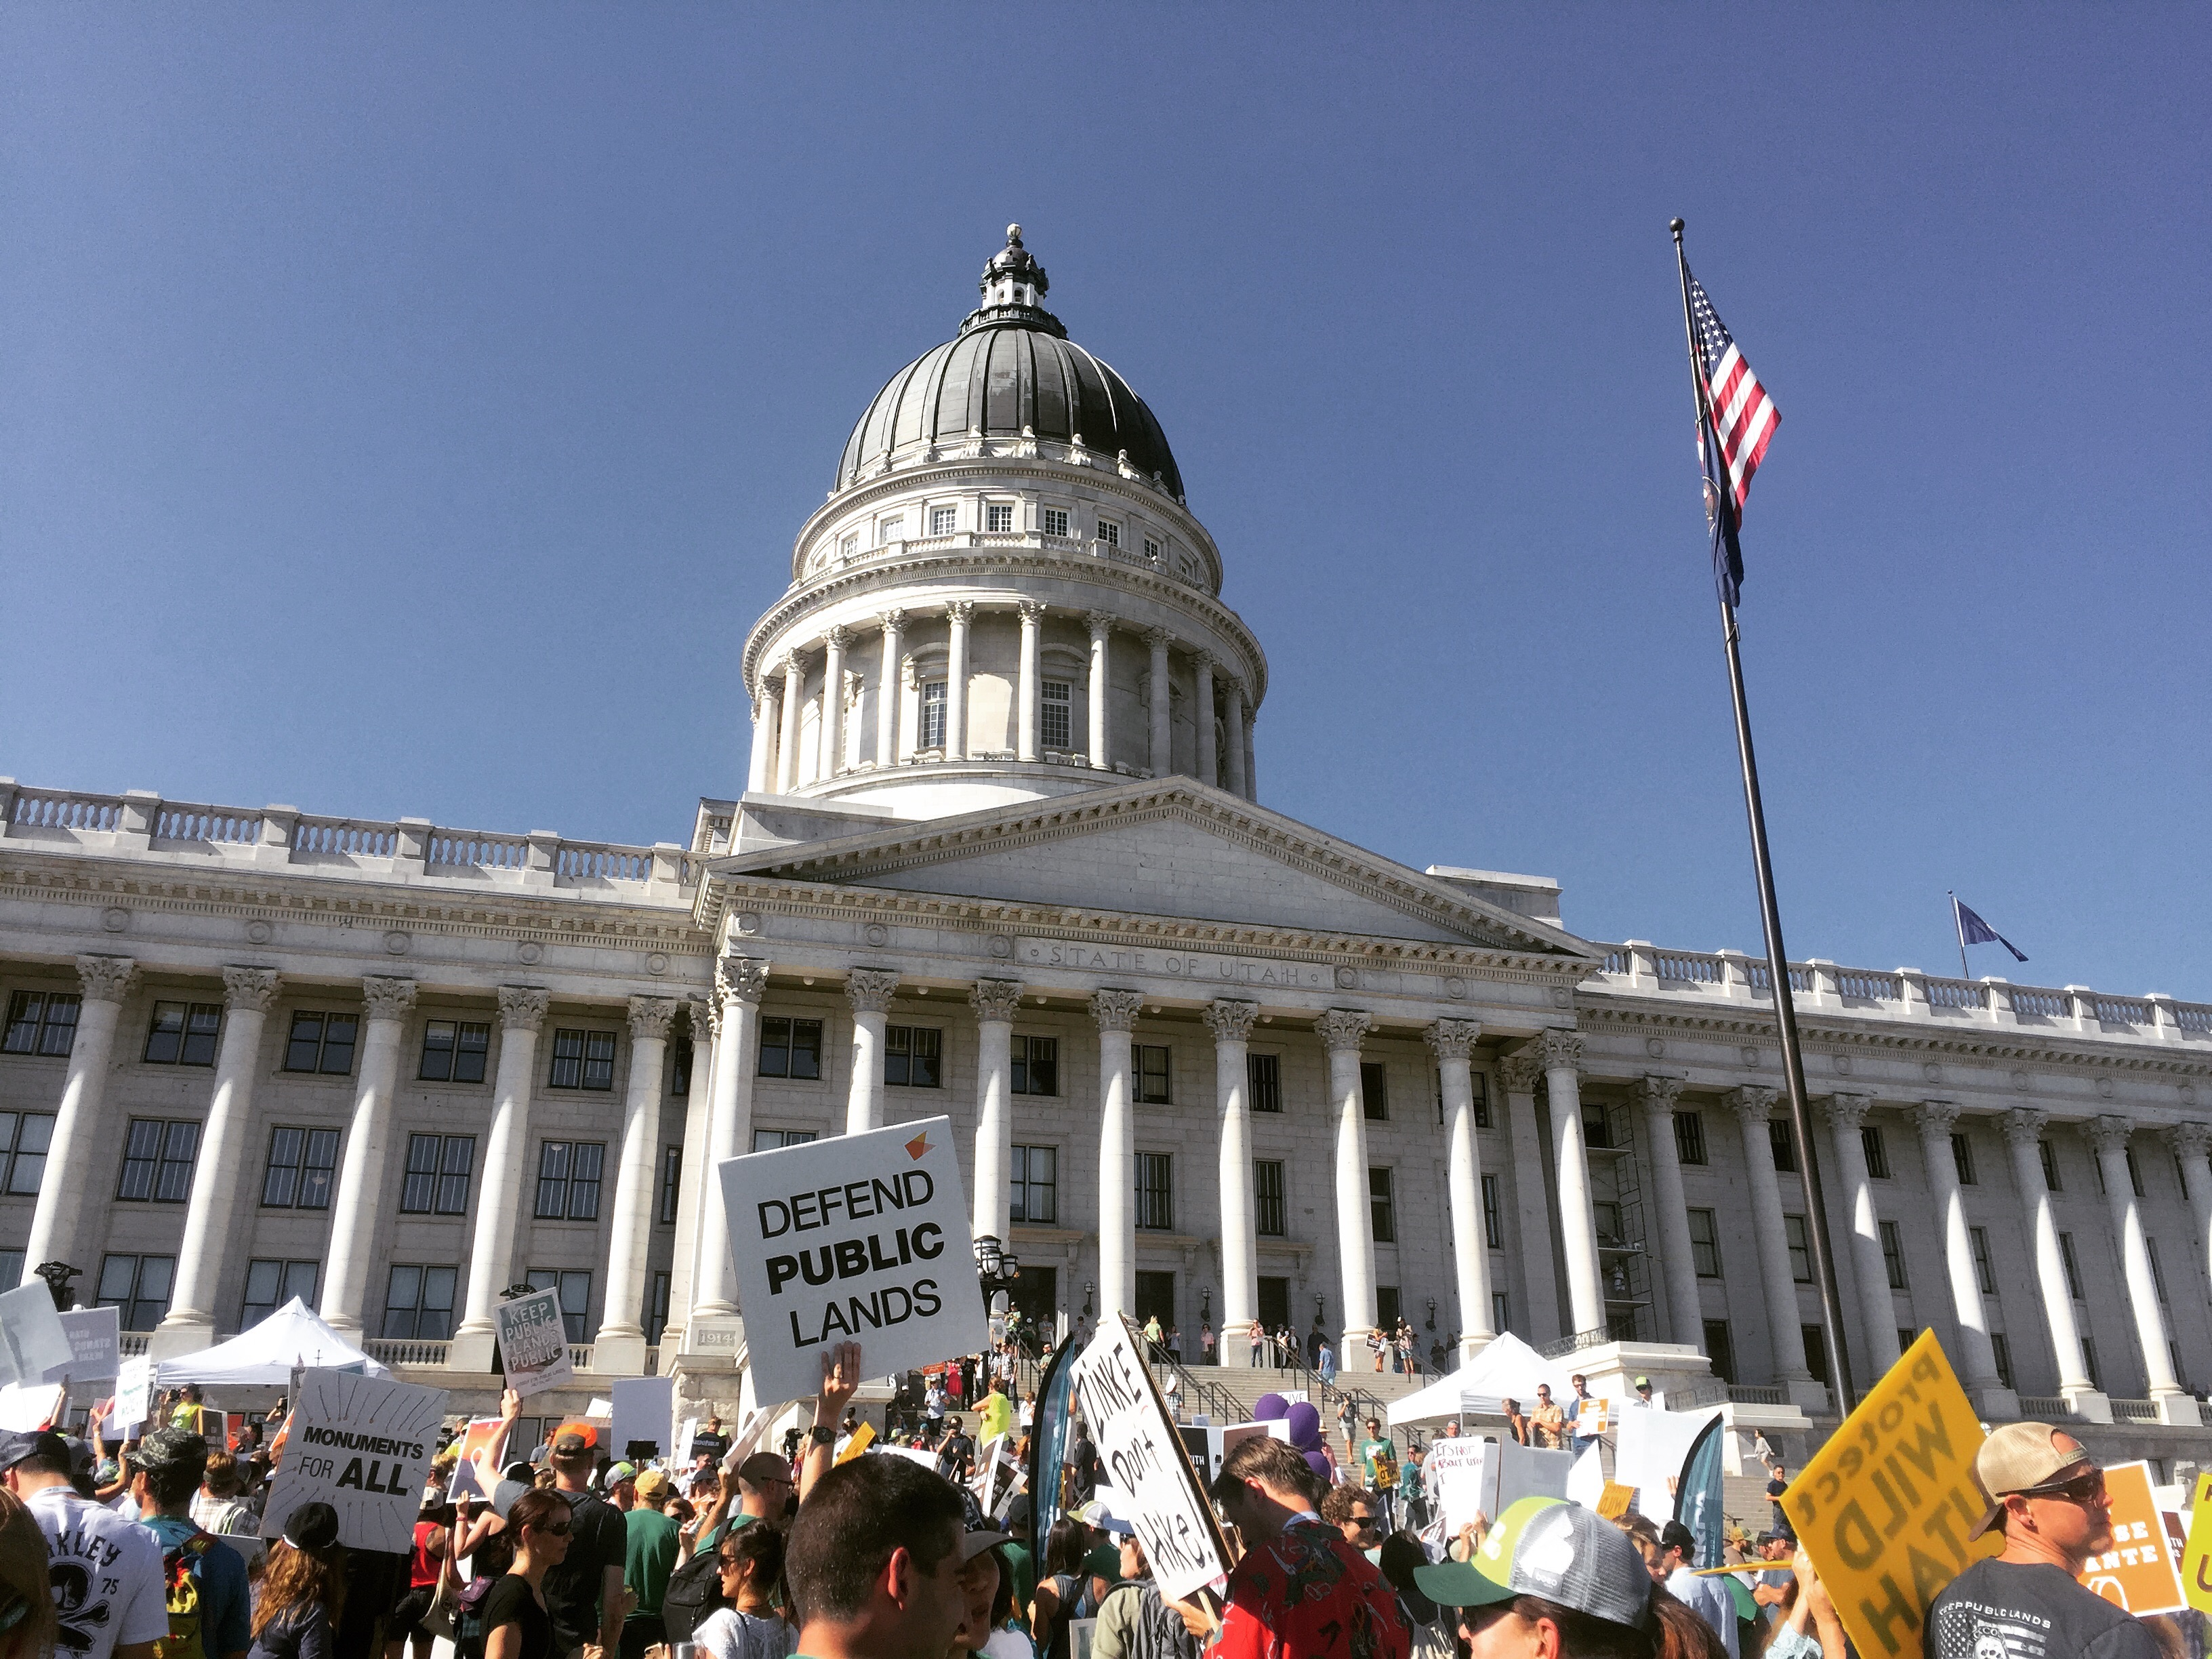 The This Land is Our Land March for Public Lands congregated in front of the Utah capitol in Salt Lake City on July 27 in conjunction with the last Outdoor Retailer Summer Market trade show to be hosted by the city. OR recently agreed to move the trade show to Denver starting next year in response to Utah lawmakers' continued efforts to rescind Bears Ears and Grand Staircase Escalante National Monuments. [Photo] Emma Murray